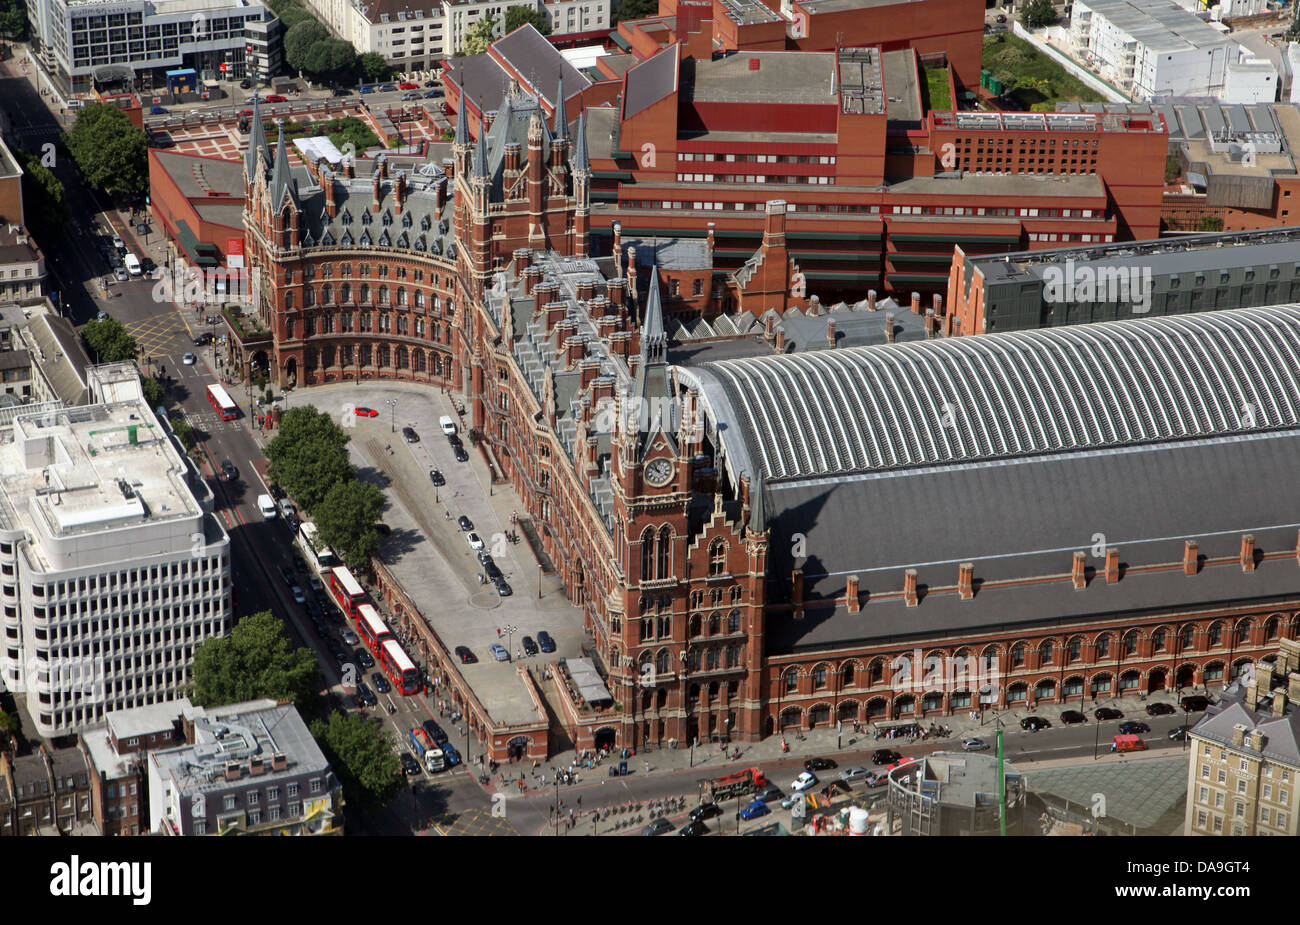 aerial view of St Pancras Station in London - Stock Image